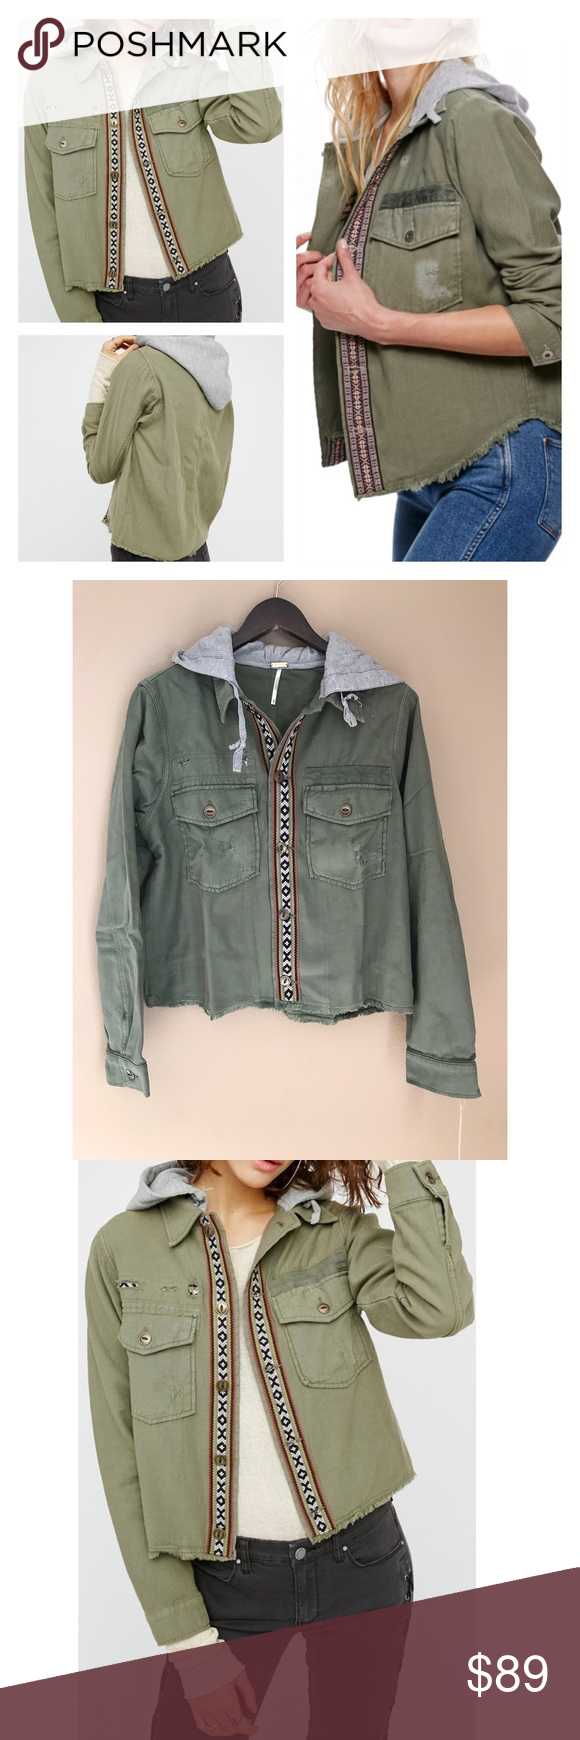 7fa260df2b17 Free People Military Jacket NWT | Pinterest